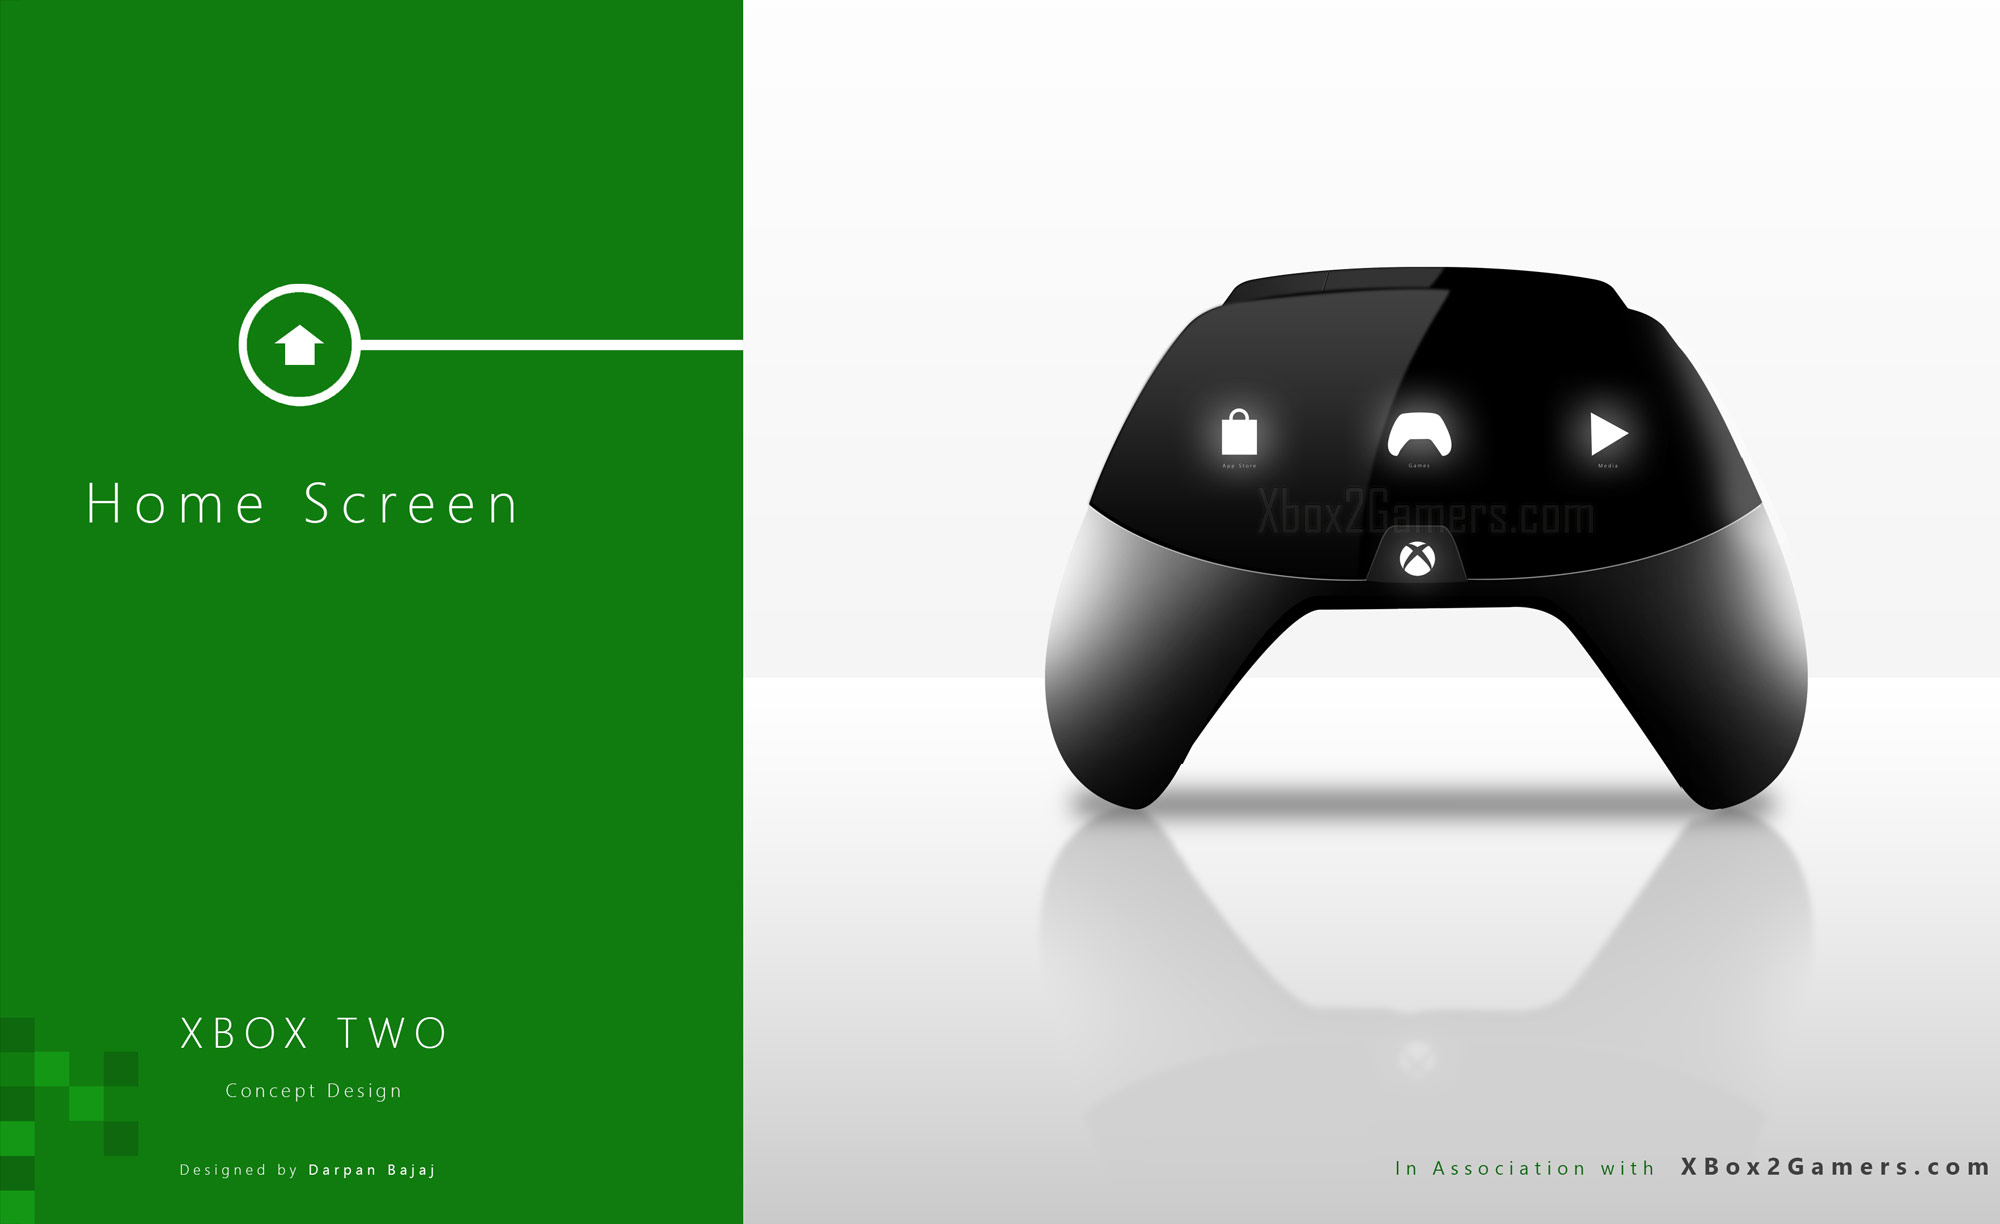 Best Xbox Controller >> XBox 2 Controller Concepts by Darpan Bajaj